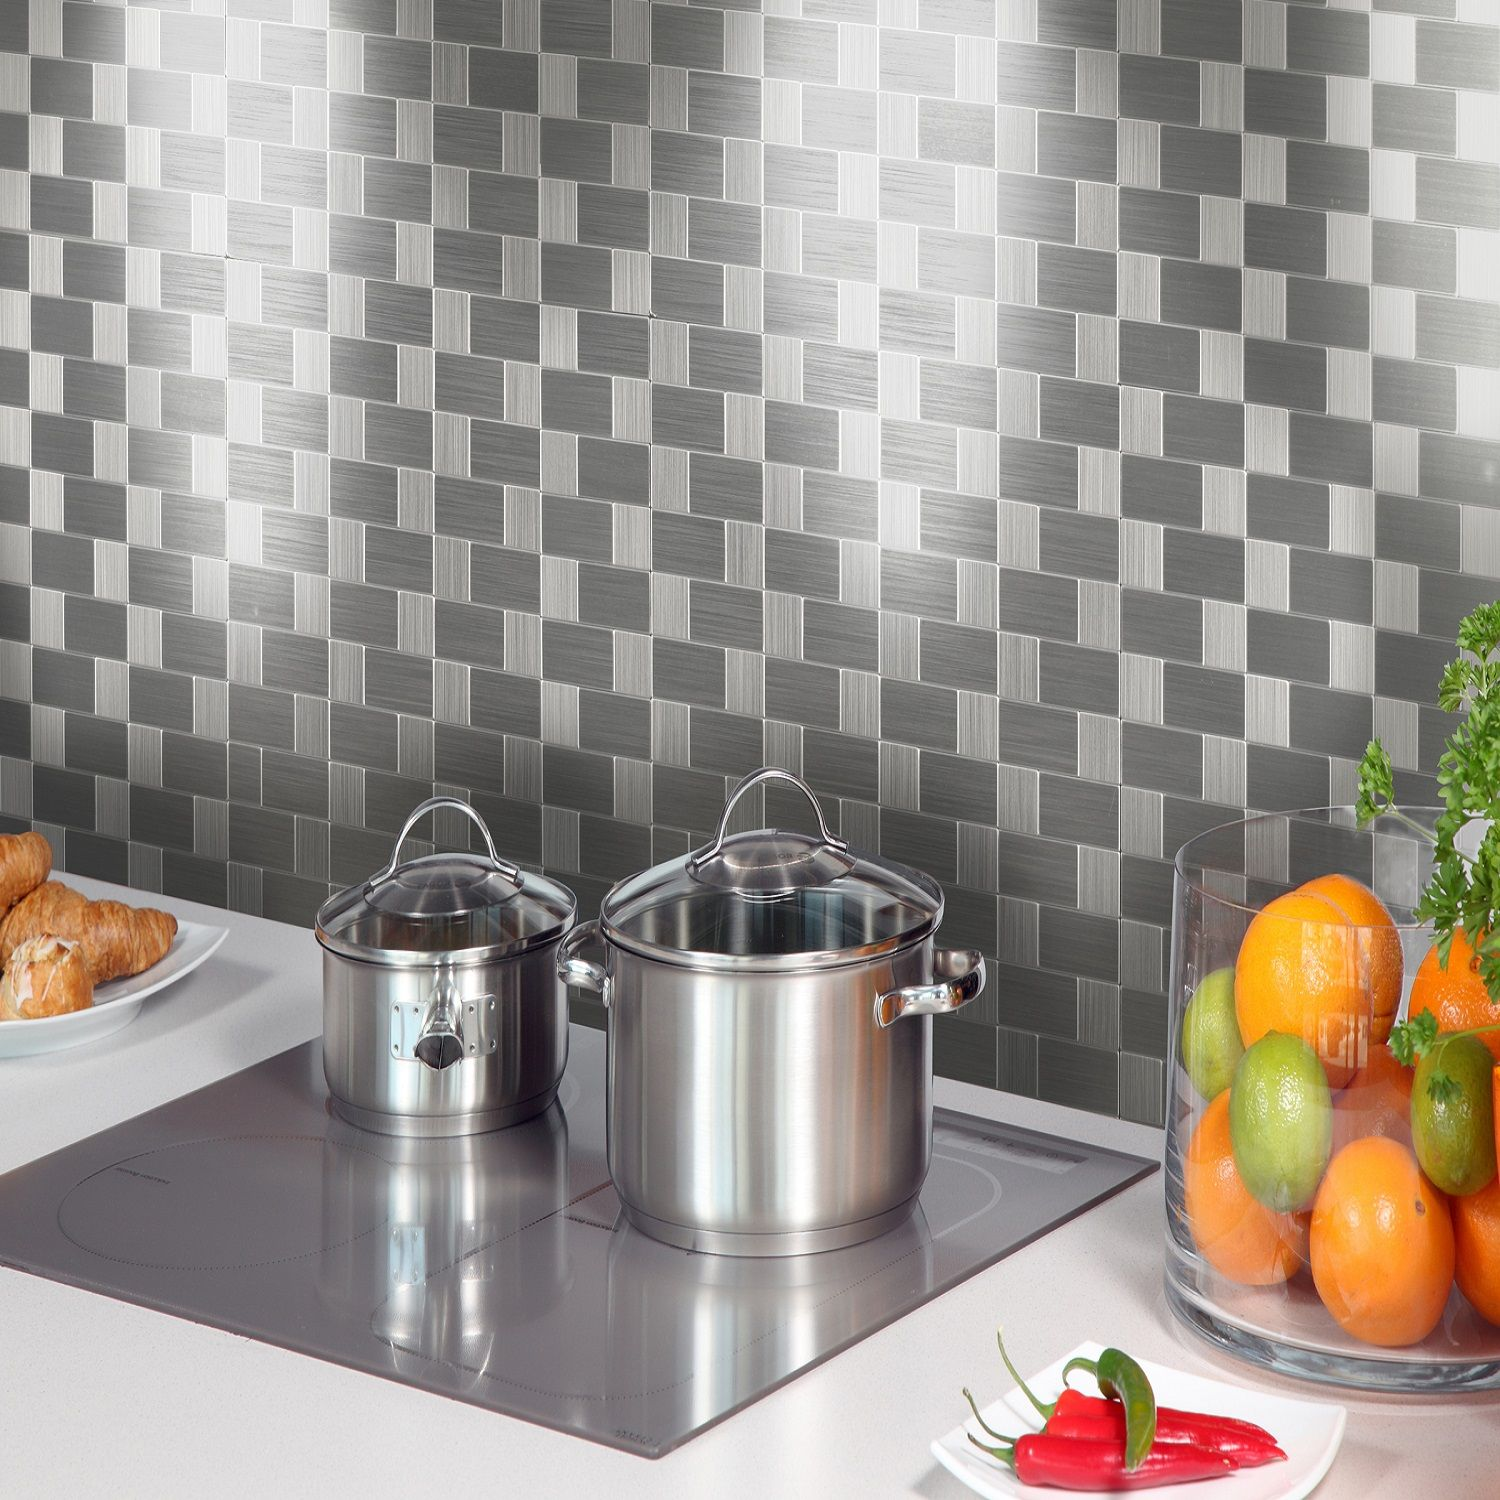 Metal Kitchen Wall Tiles Metal Mosaic Wall Tile 12inx12inx4mm 03110 Kitchen And Bath